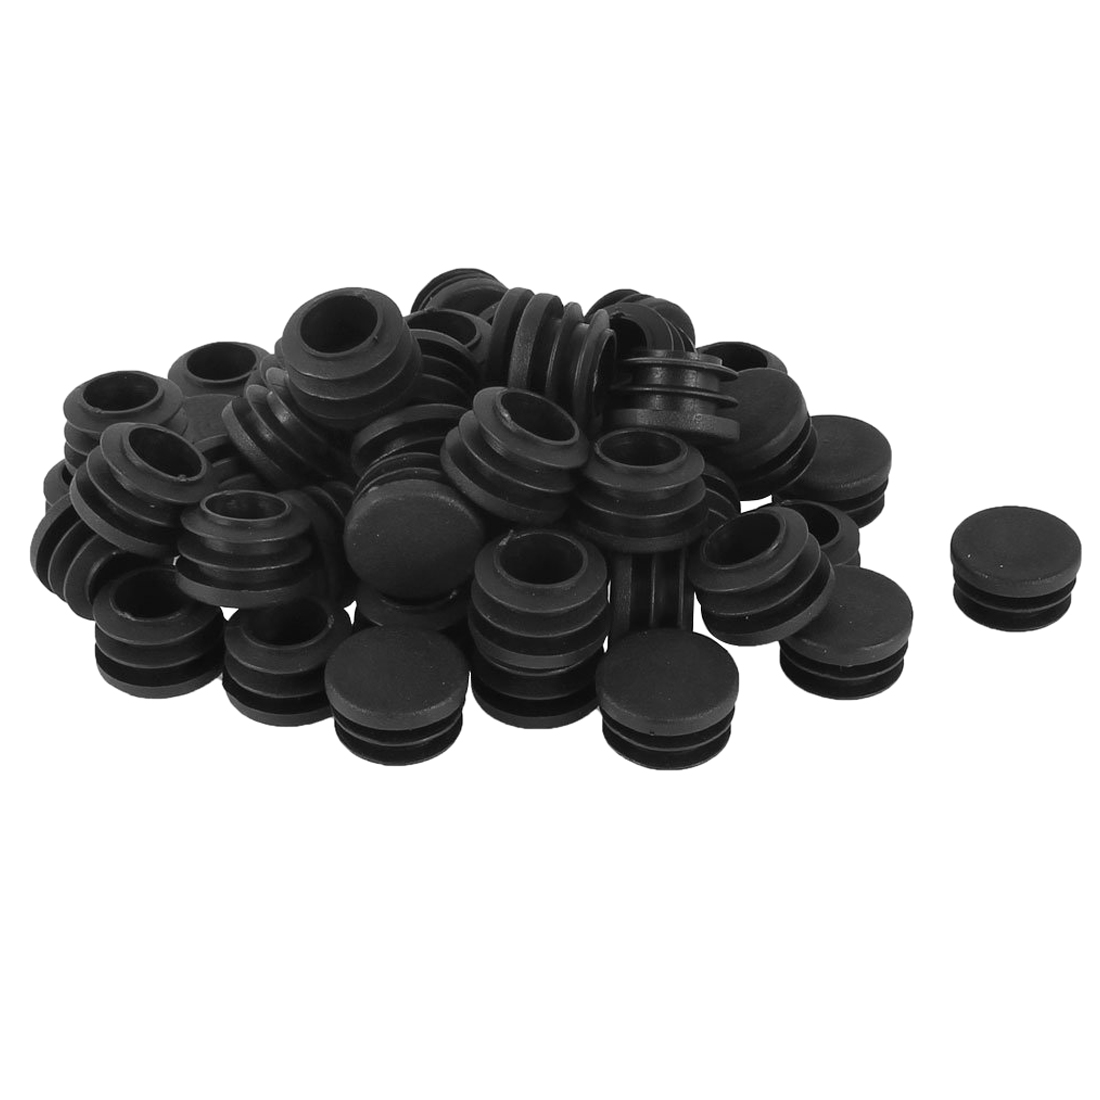 Wholesale 50 Pcs Black Plastic Furniture Leg Plug Blanking End Caps Insert Plugs Bung For Round Pipe Tube 22mm Dia